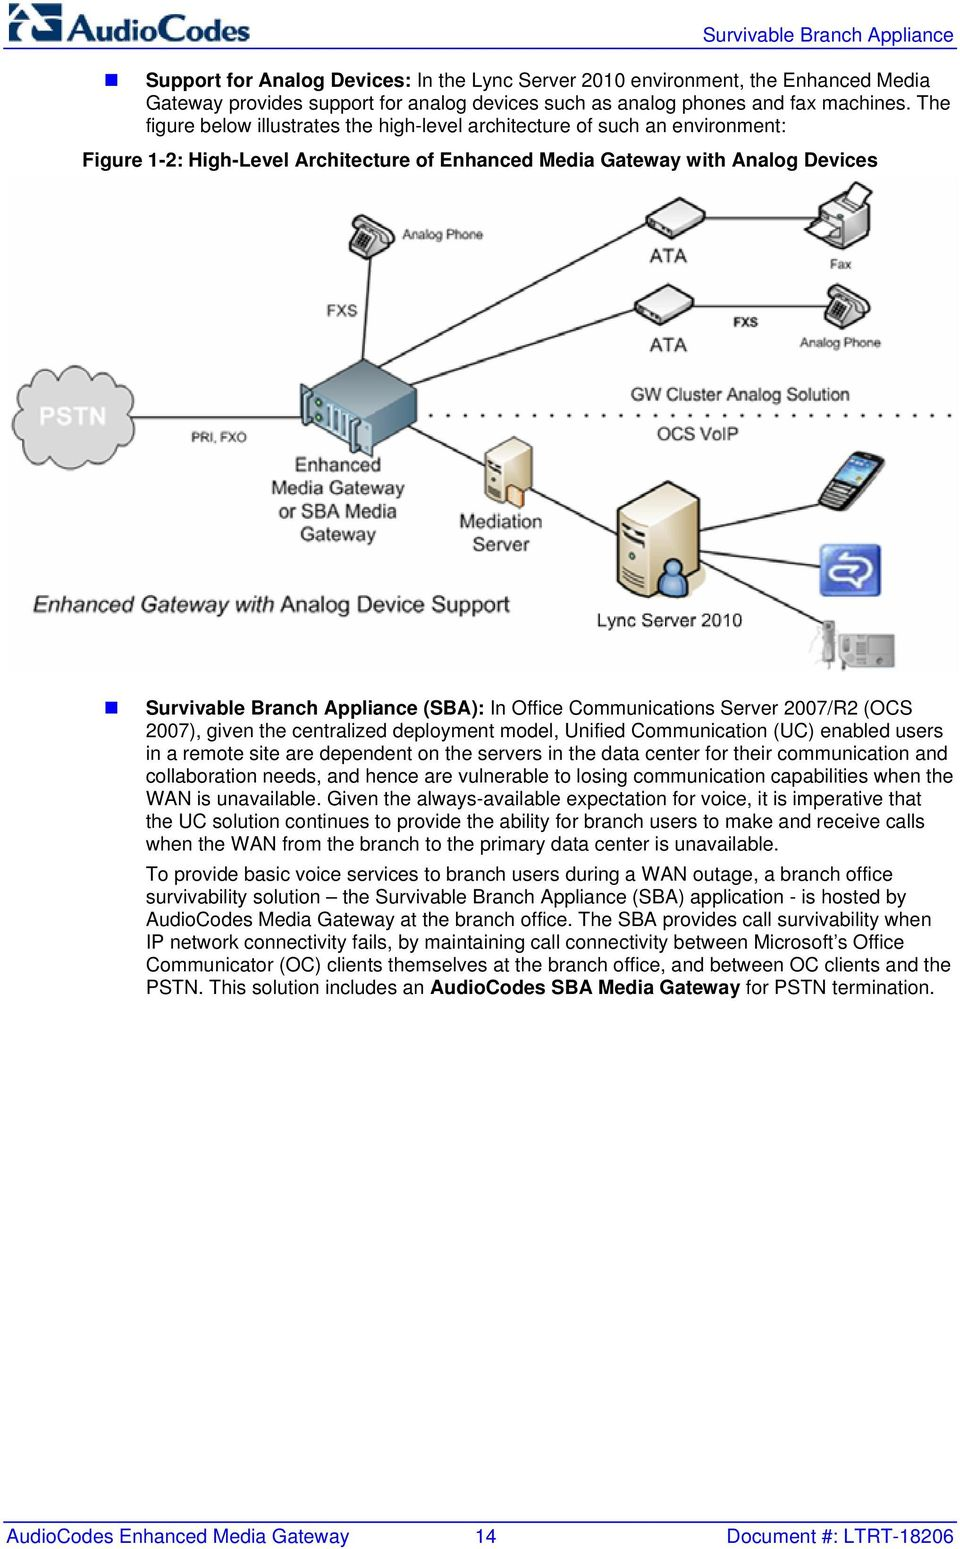 In Office Communications Server 2007/R2 (OCS 2007), given the centralized deployment model, Unified Communication (UC) enabled users in a remote site are dependent on the servers in the data center